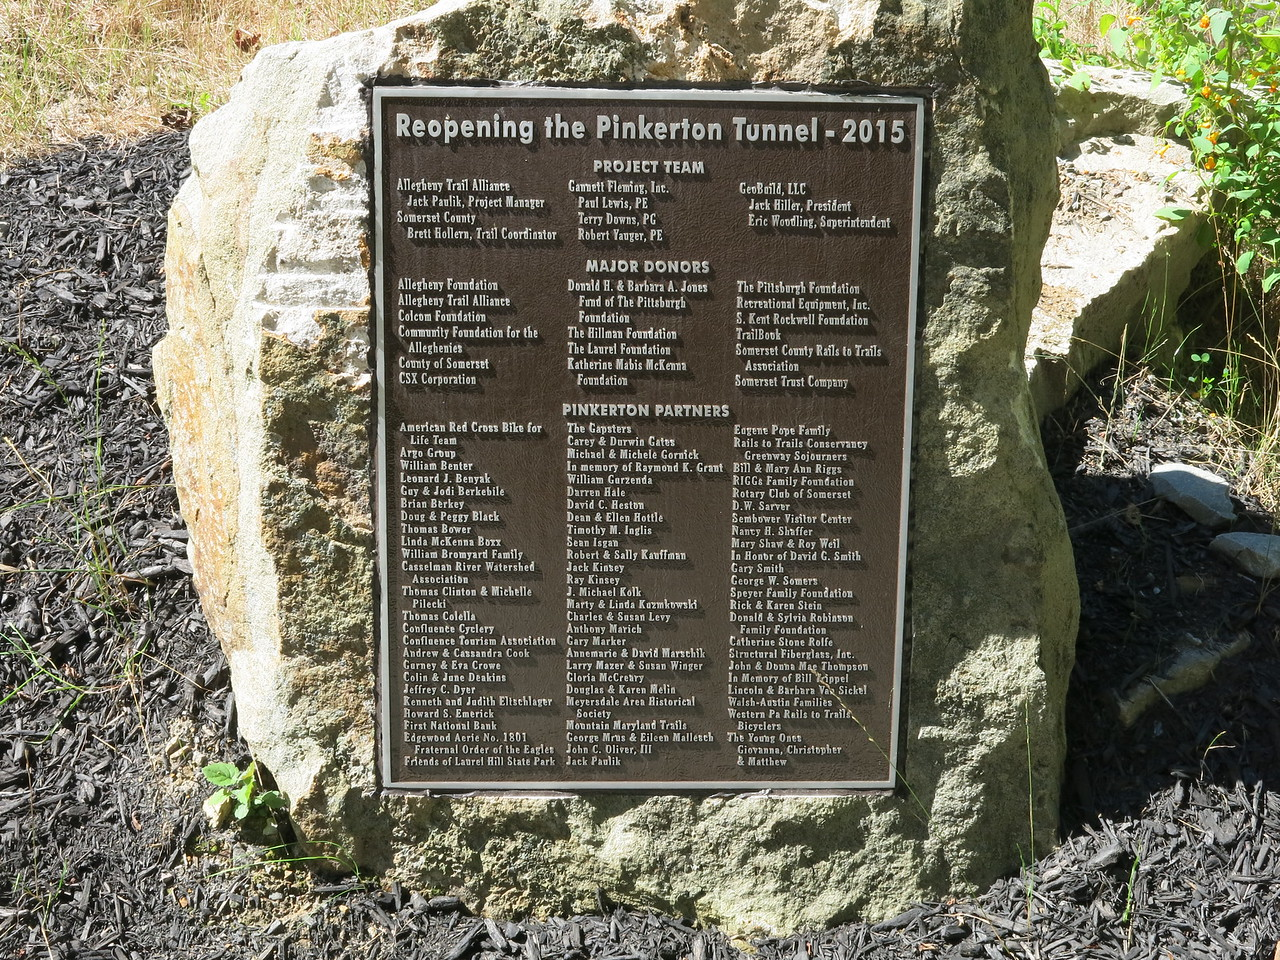 The plaque at the east portal of the tunnel commemorating the rebuilding of the tunnel in 2015